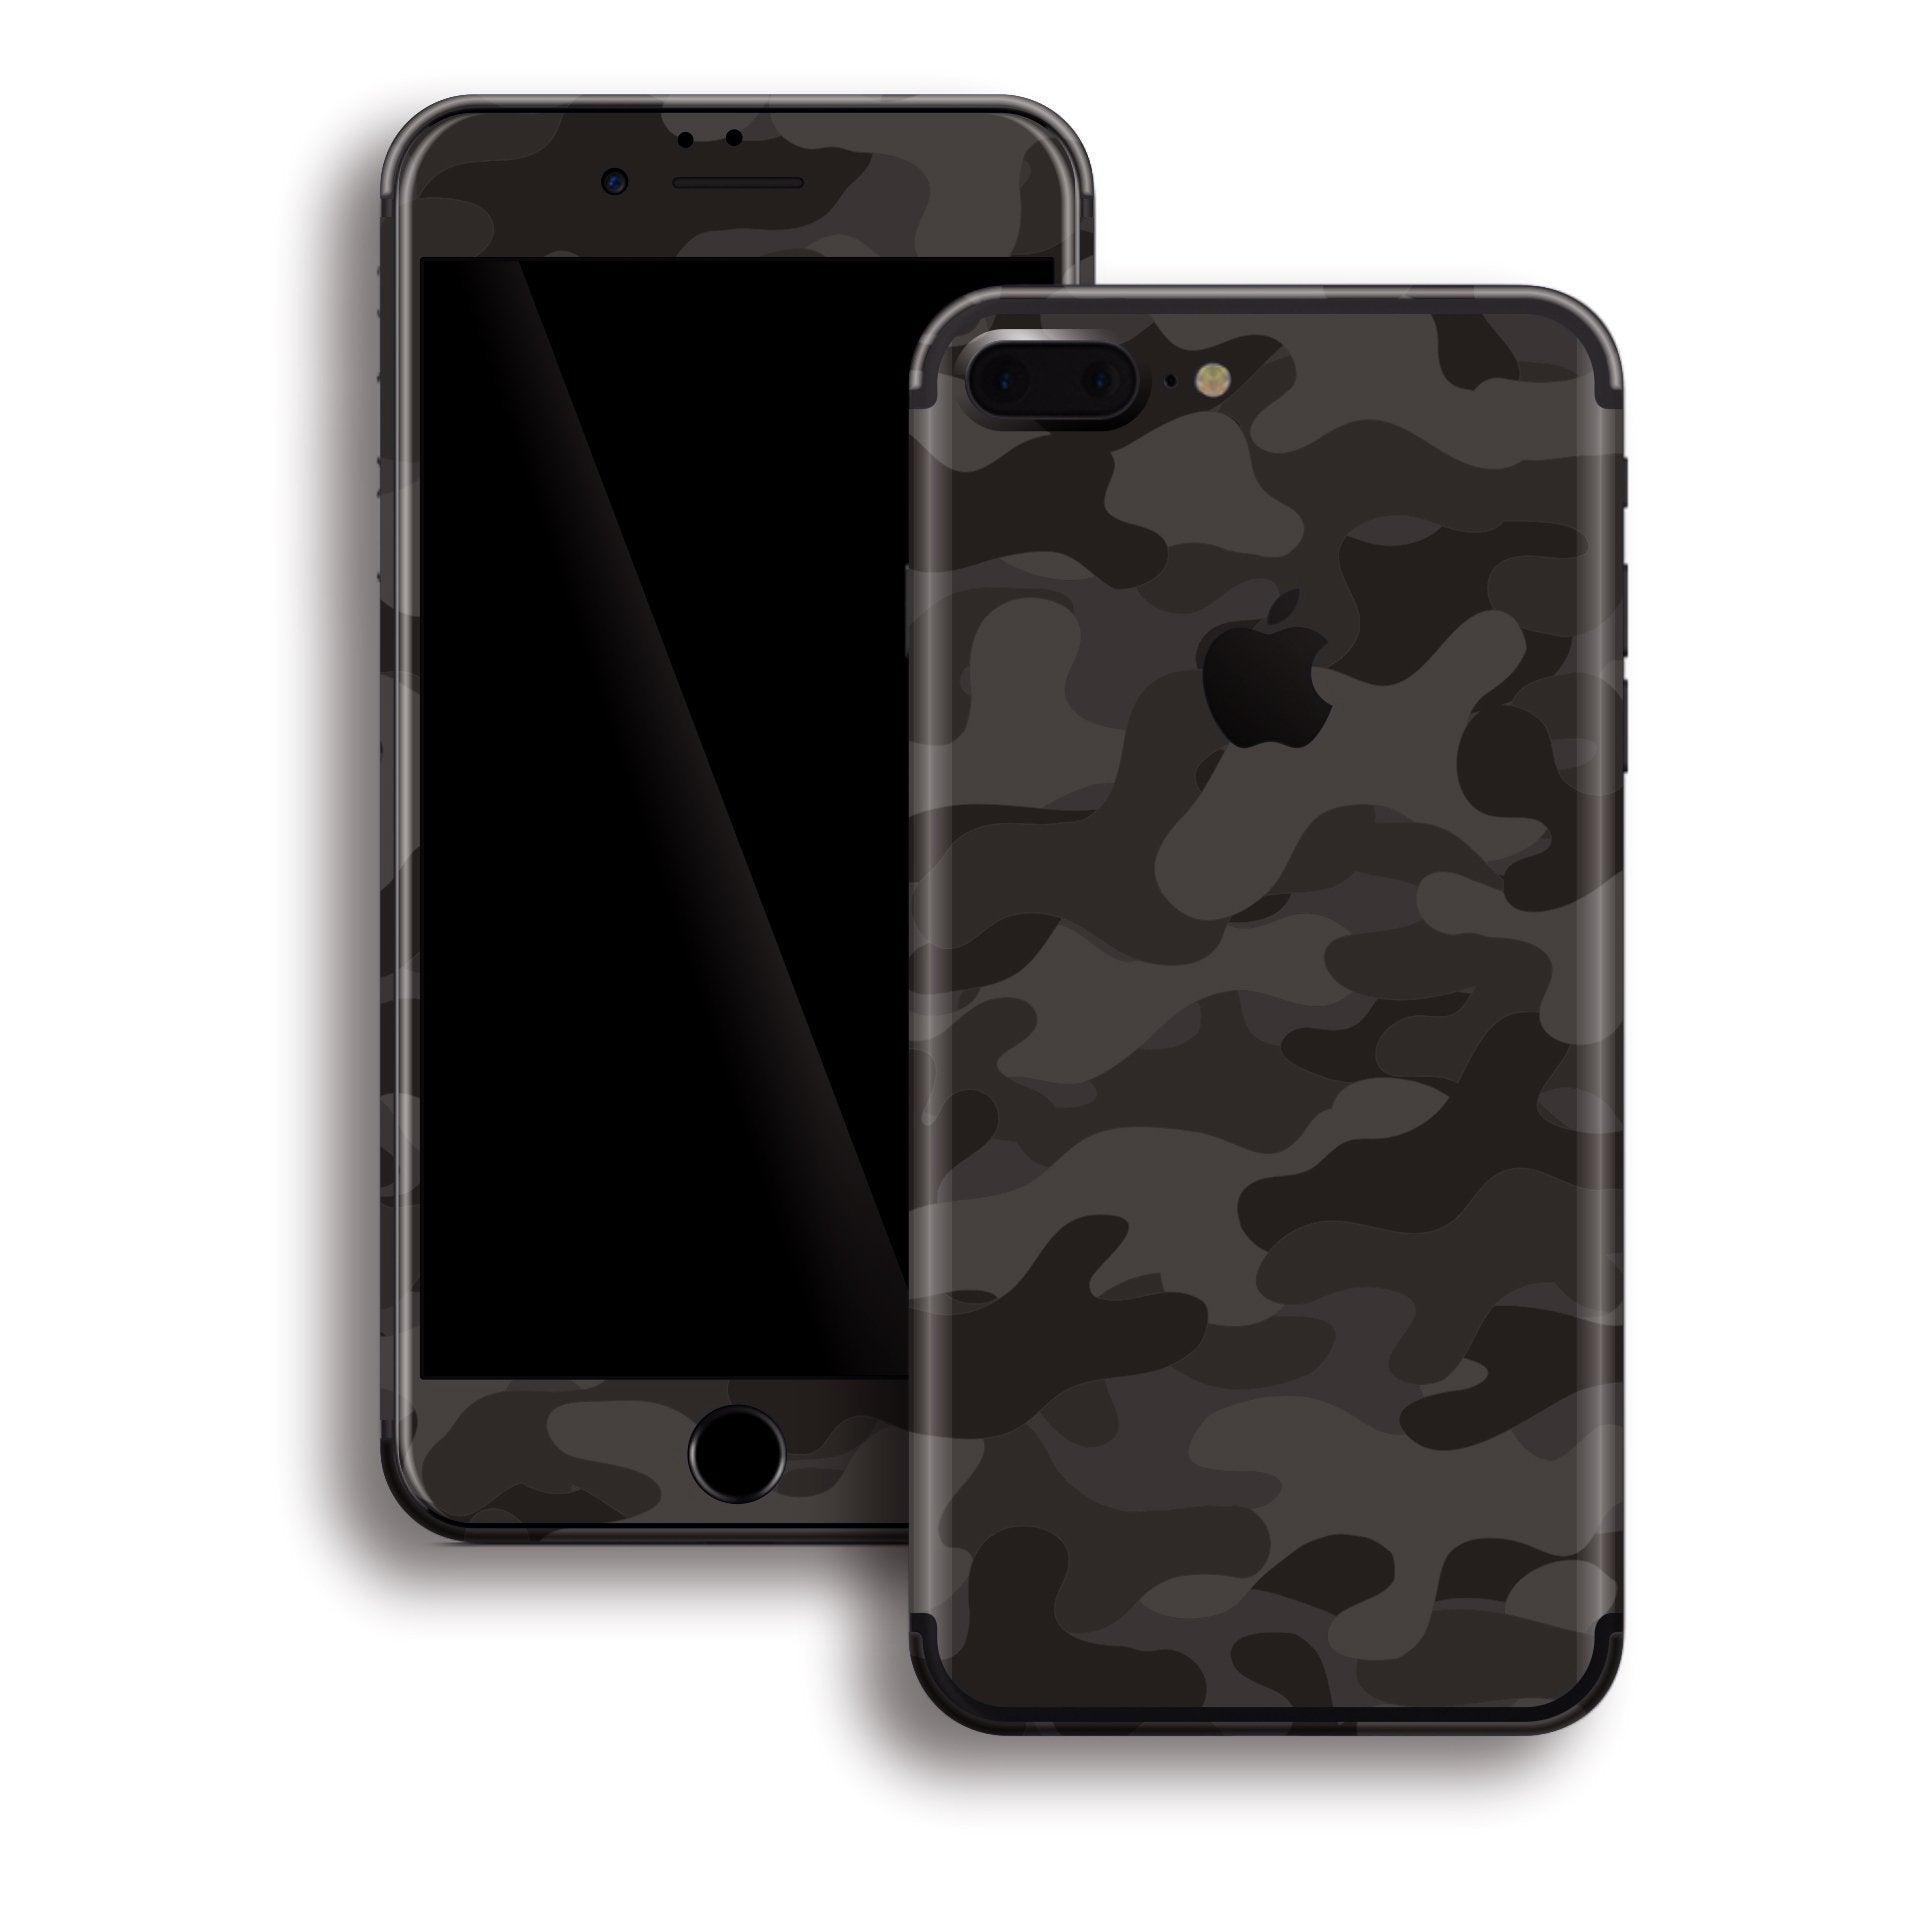 iPhone 8 PLUS Print Custom Signature DARK SLATE Camouflage Skin Wrap Decal by EasySkinz